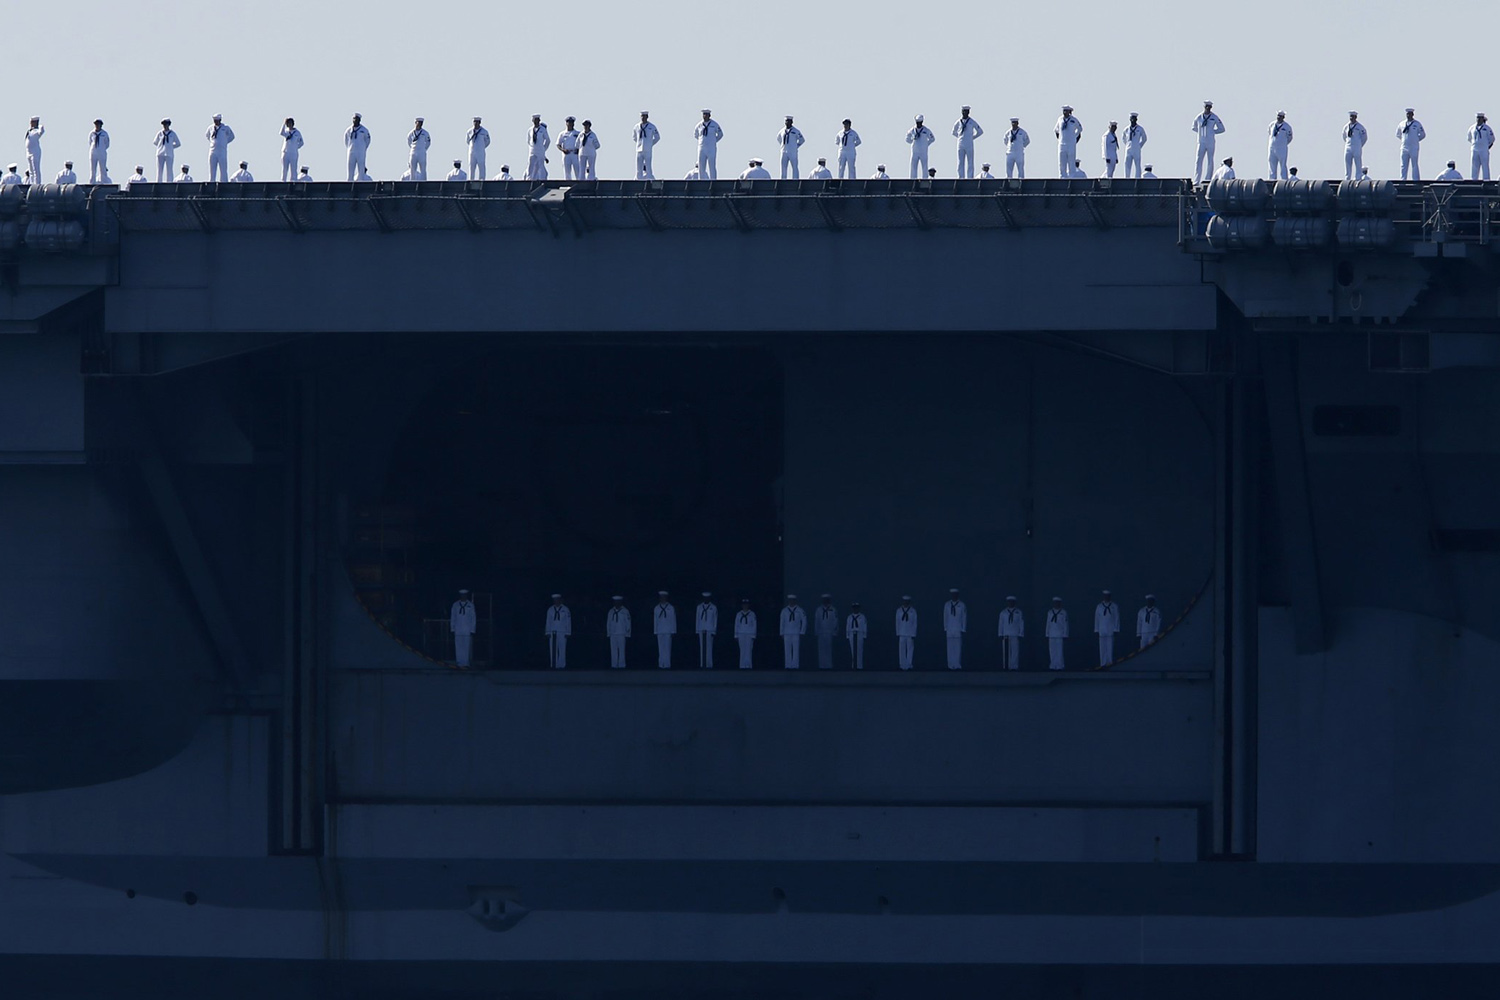 Aug. 22, 2014. Sailors man the rails of the USS Carl Vinson, a Nimitz-class aircraft carrier, as it departs its home port in San Diego, California.